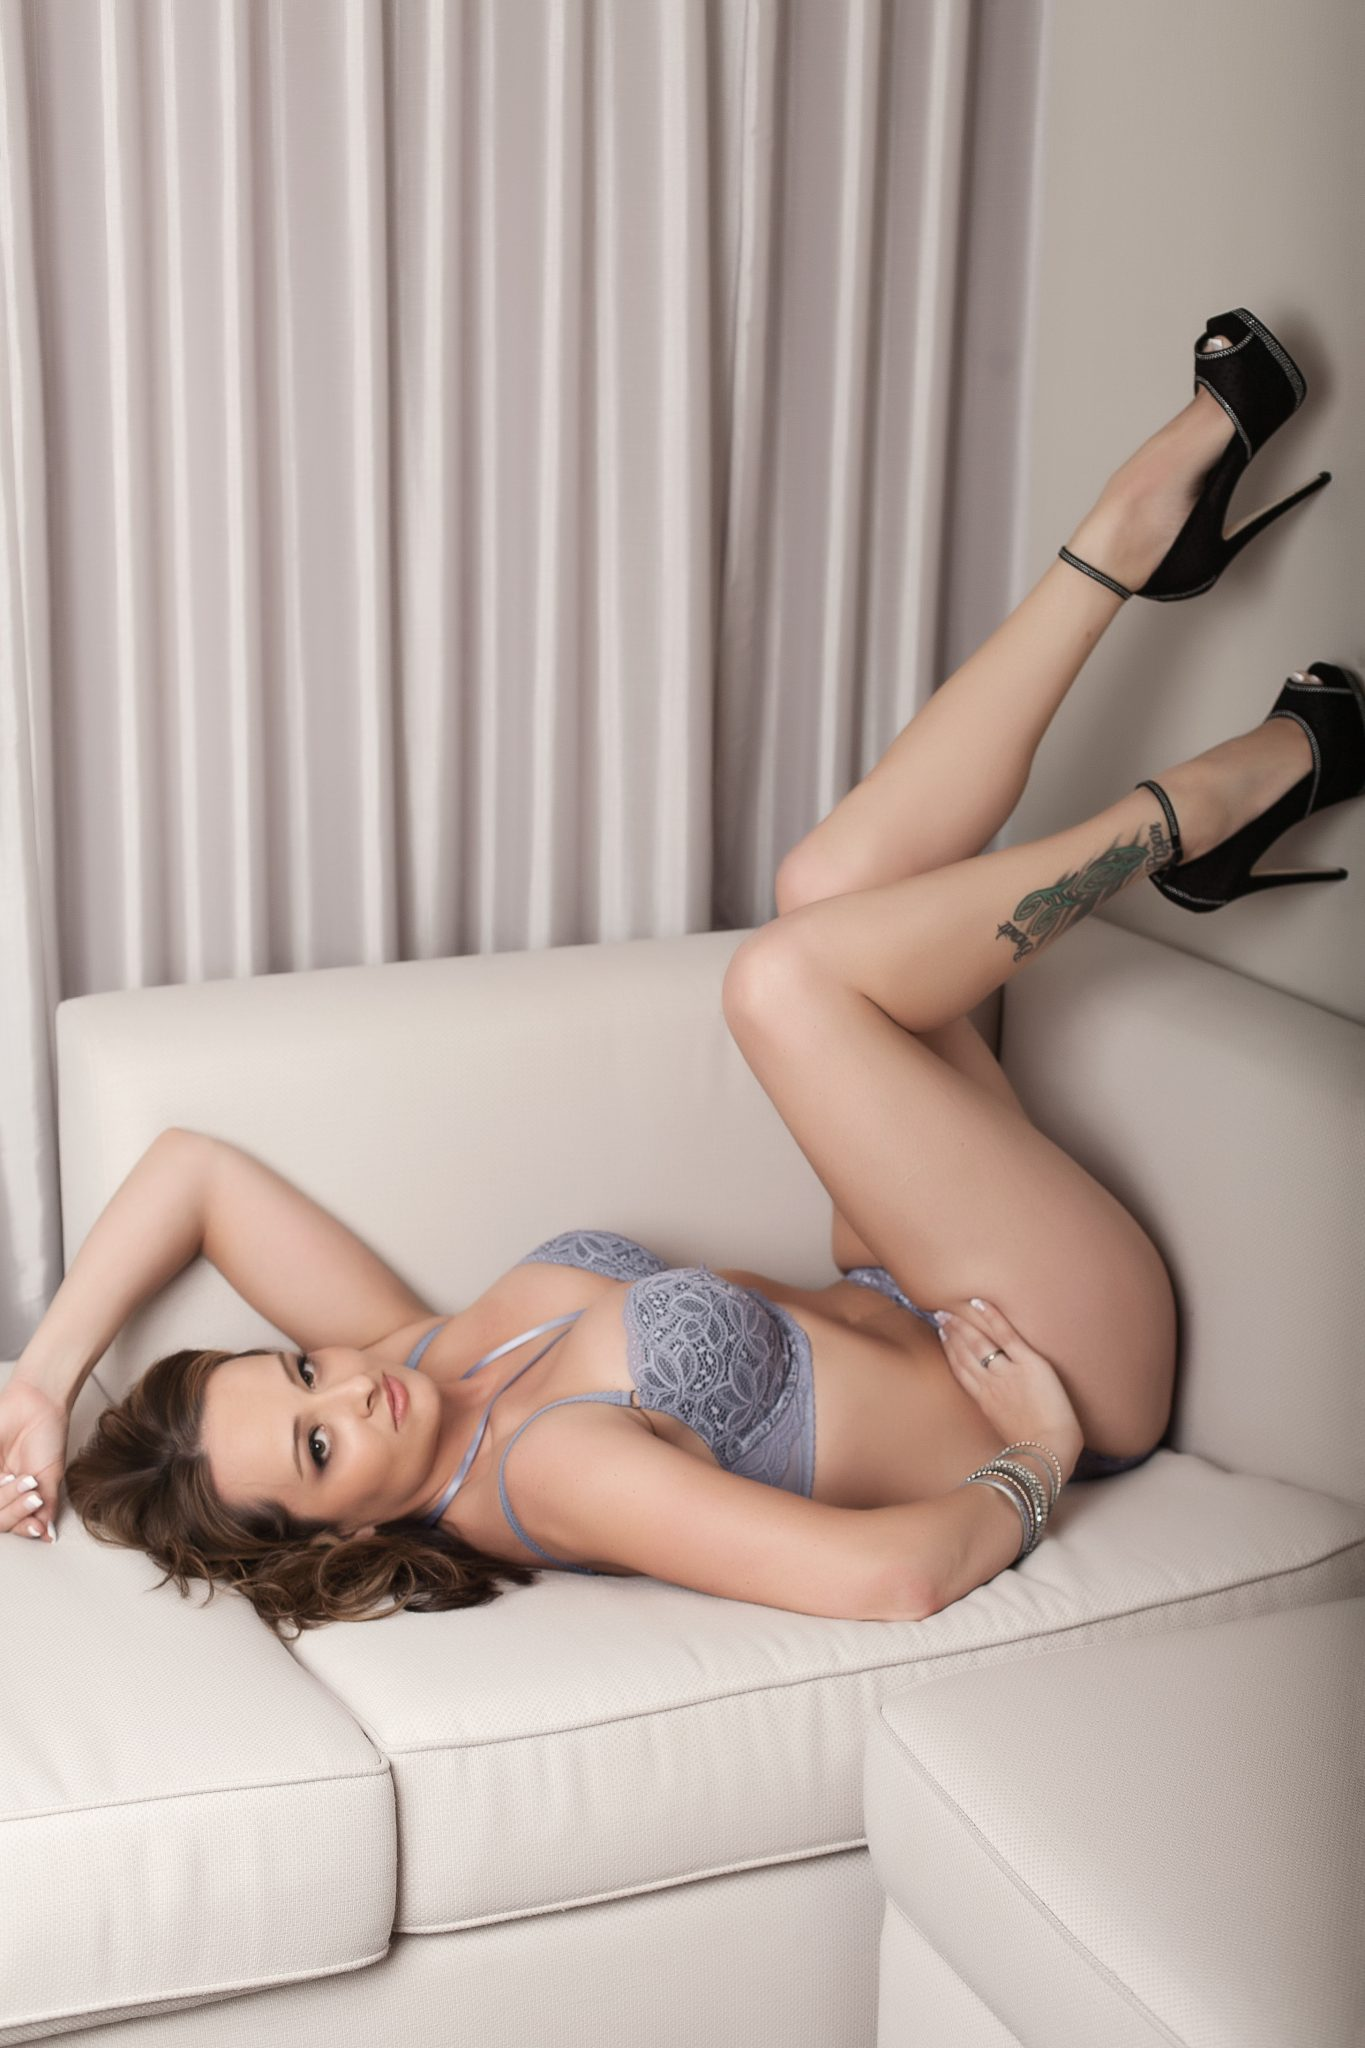 Showing off her long legs in this boudoir pose by Haute Shots.